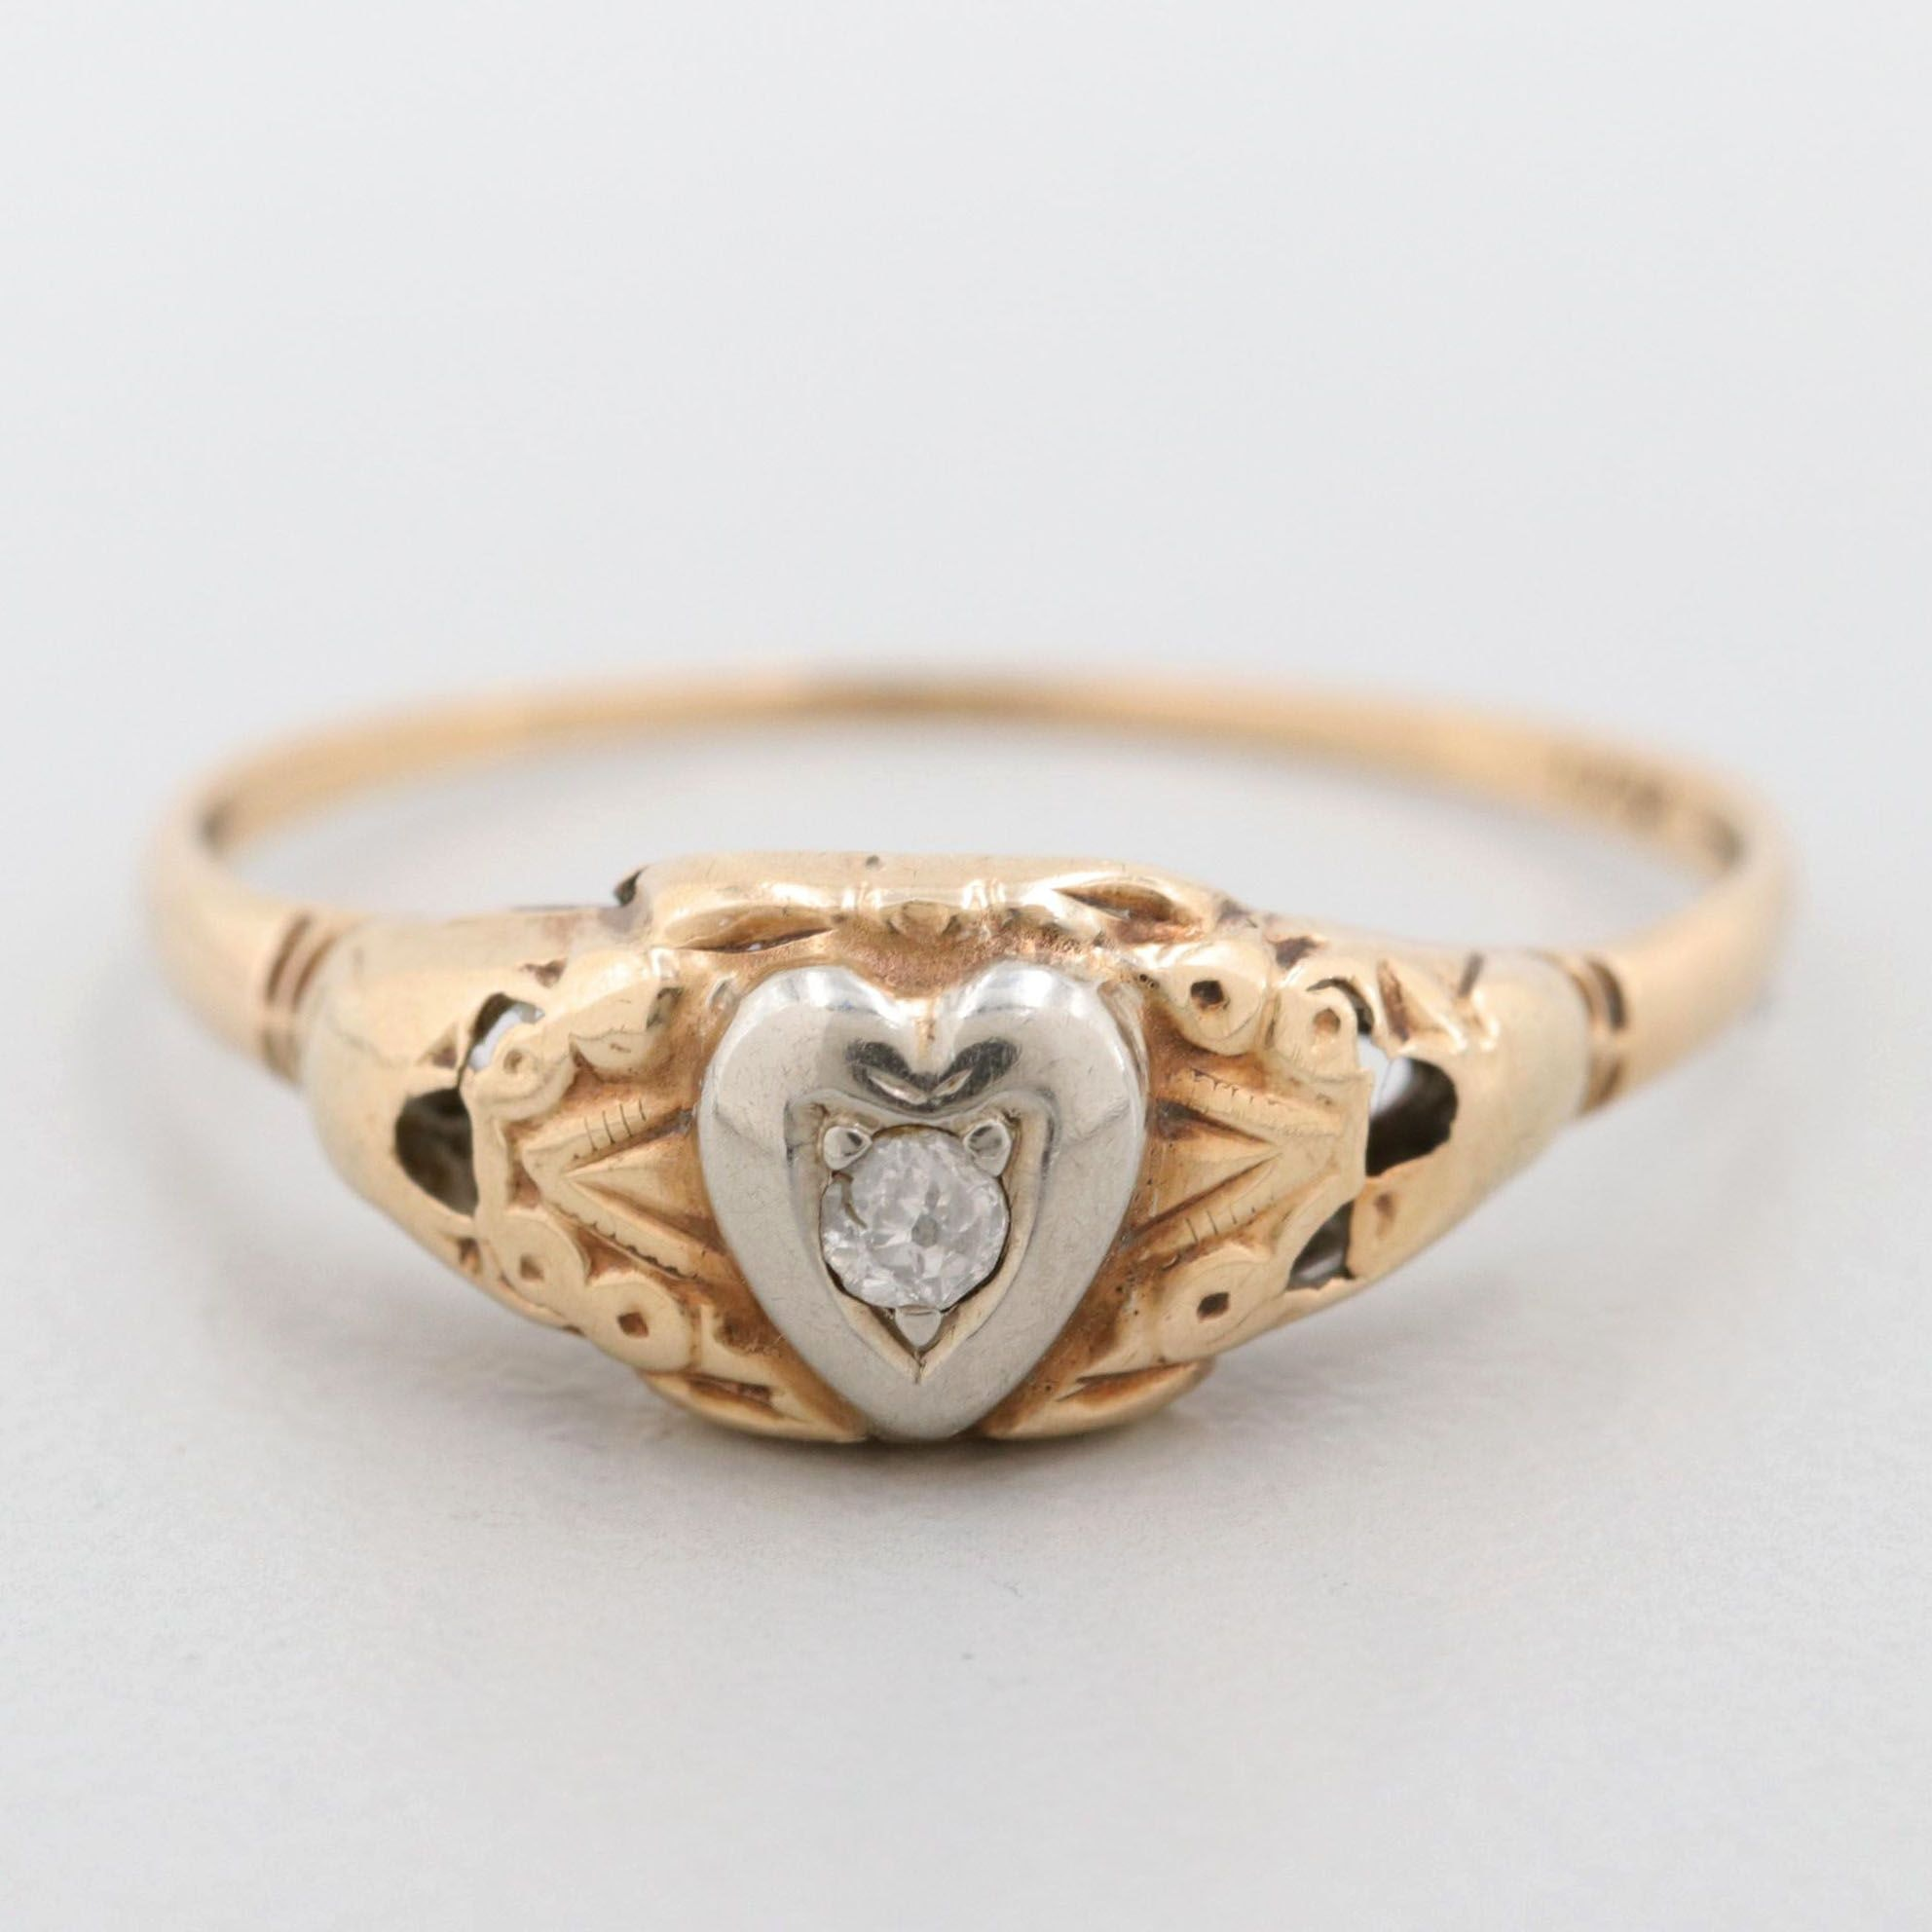 14K Yellow Gold Diamond Ring With White Gold Heart Accent